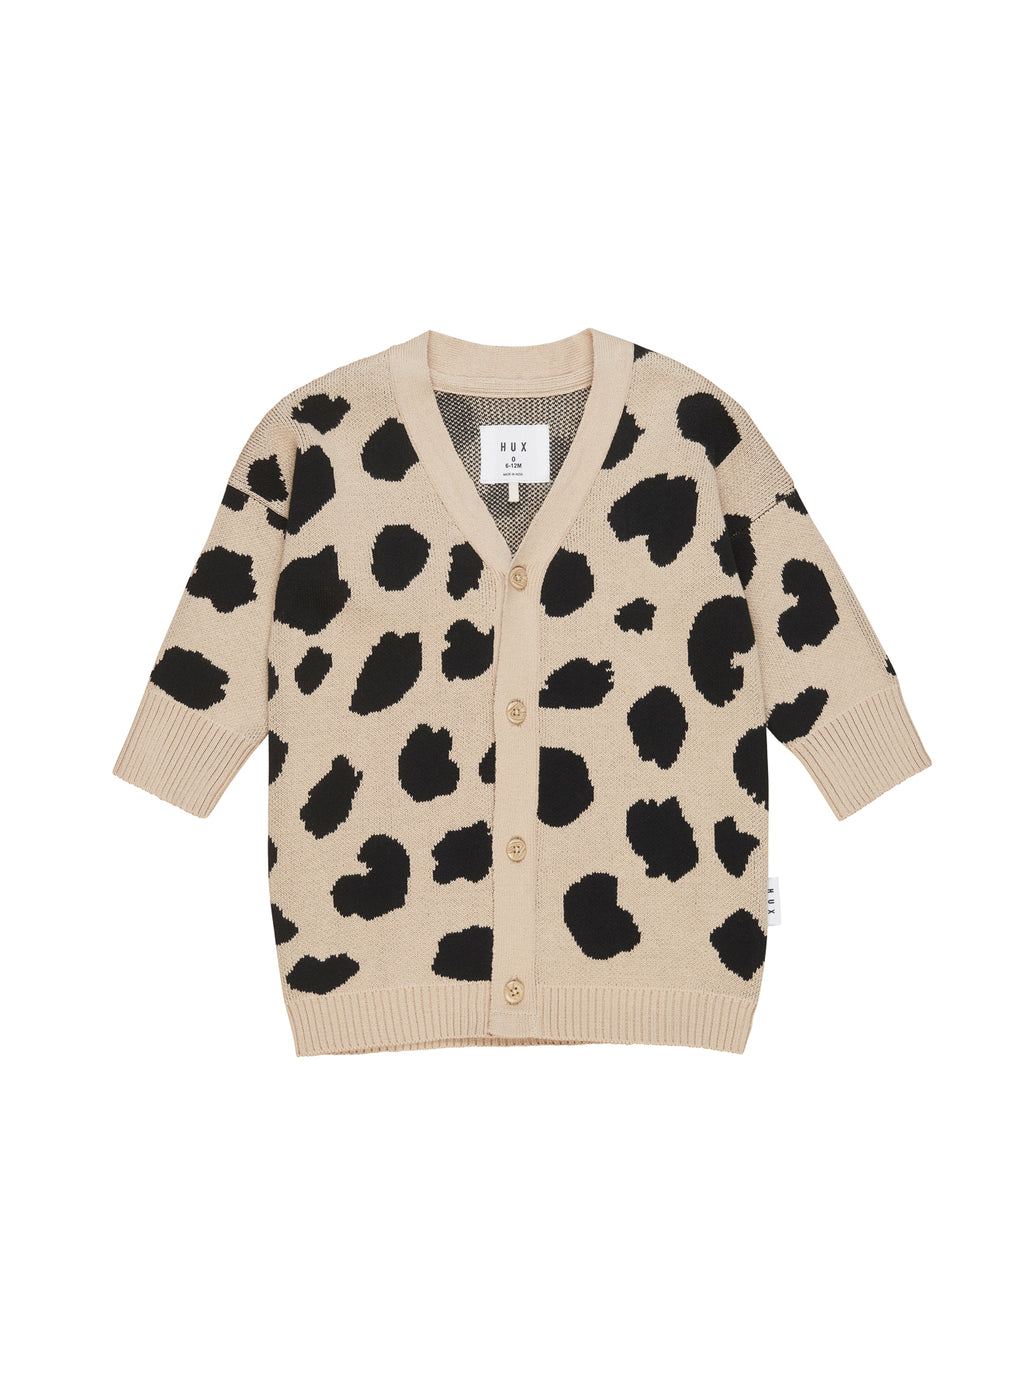 Huxbaby_Animal Spot Knit Cardi - The Child Hood